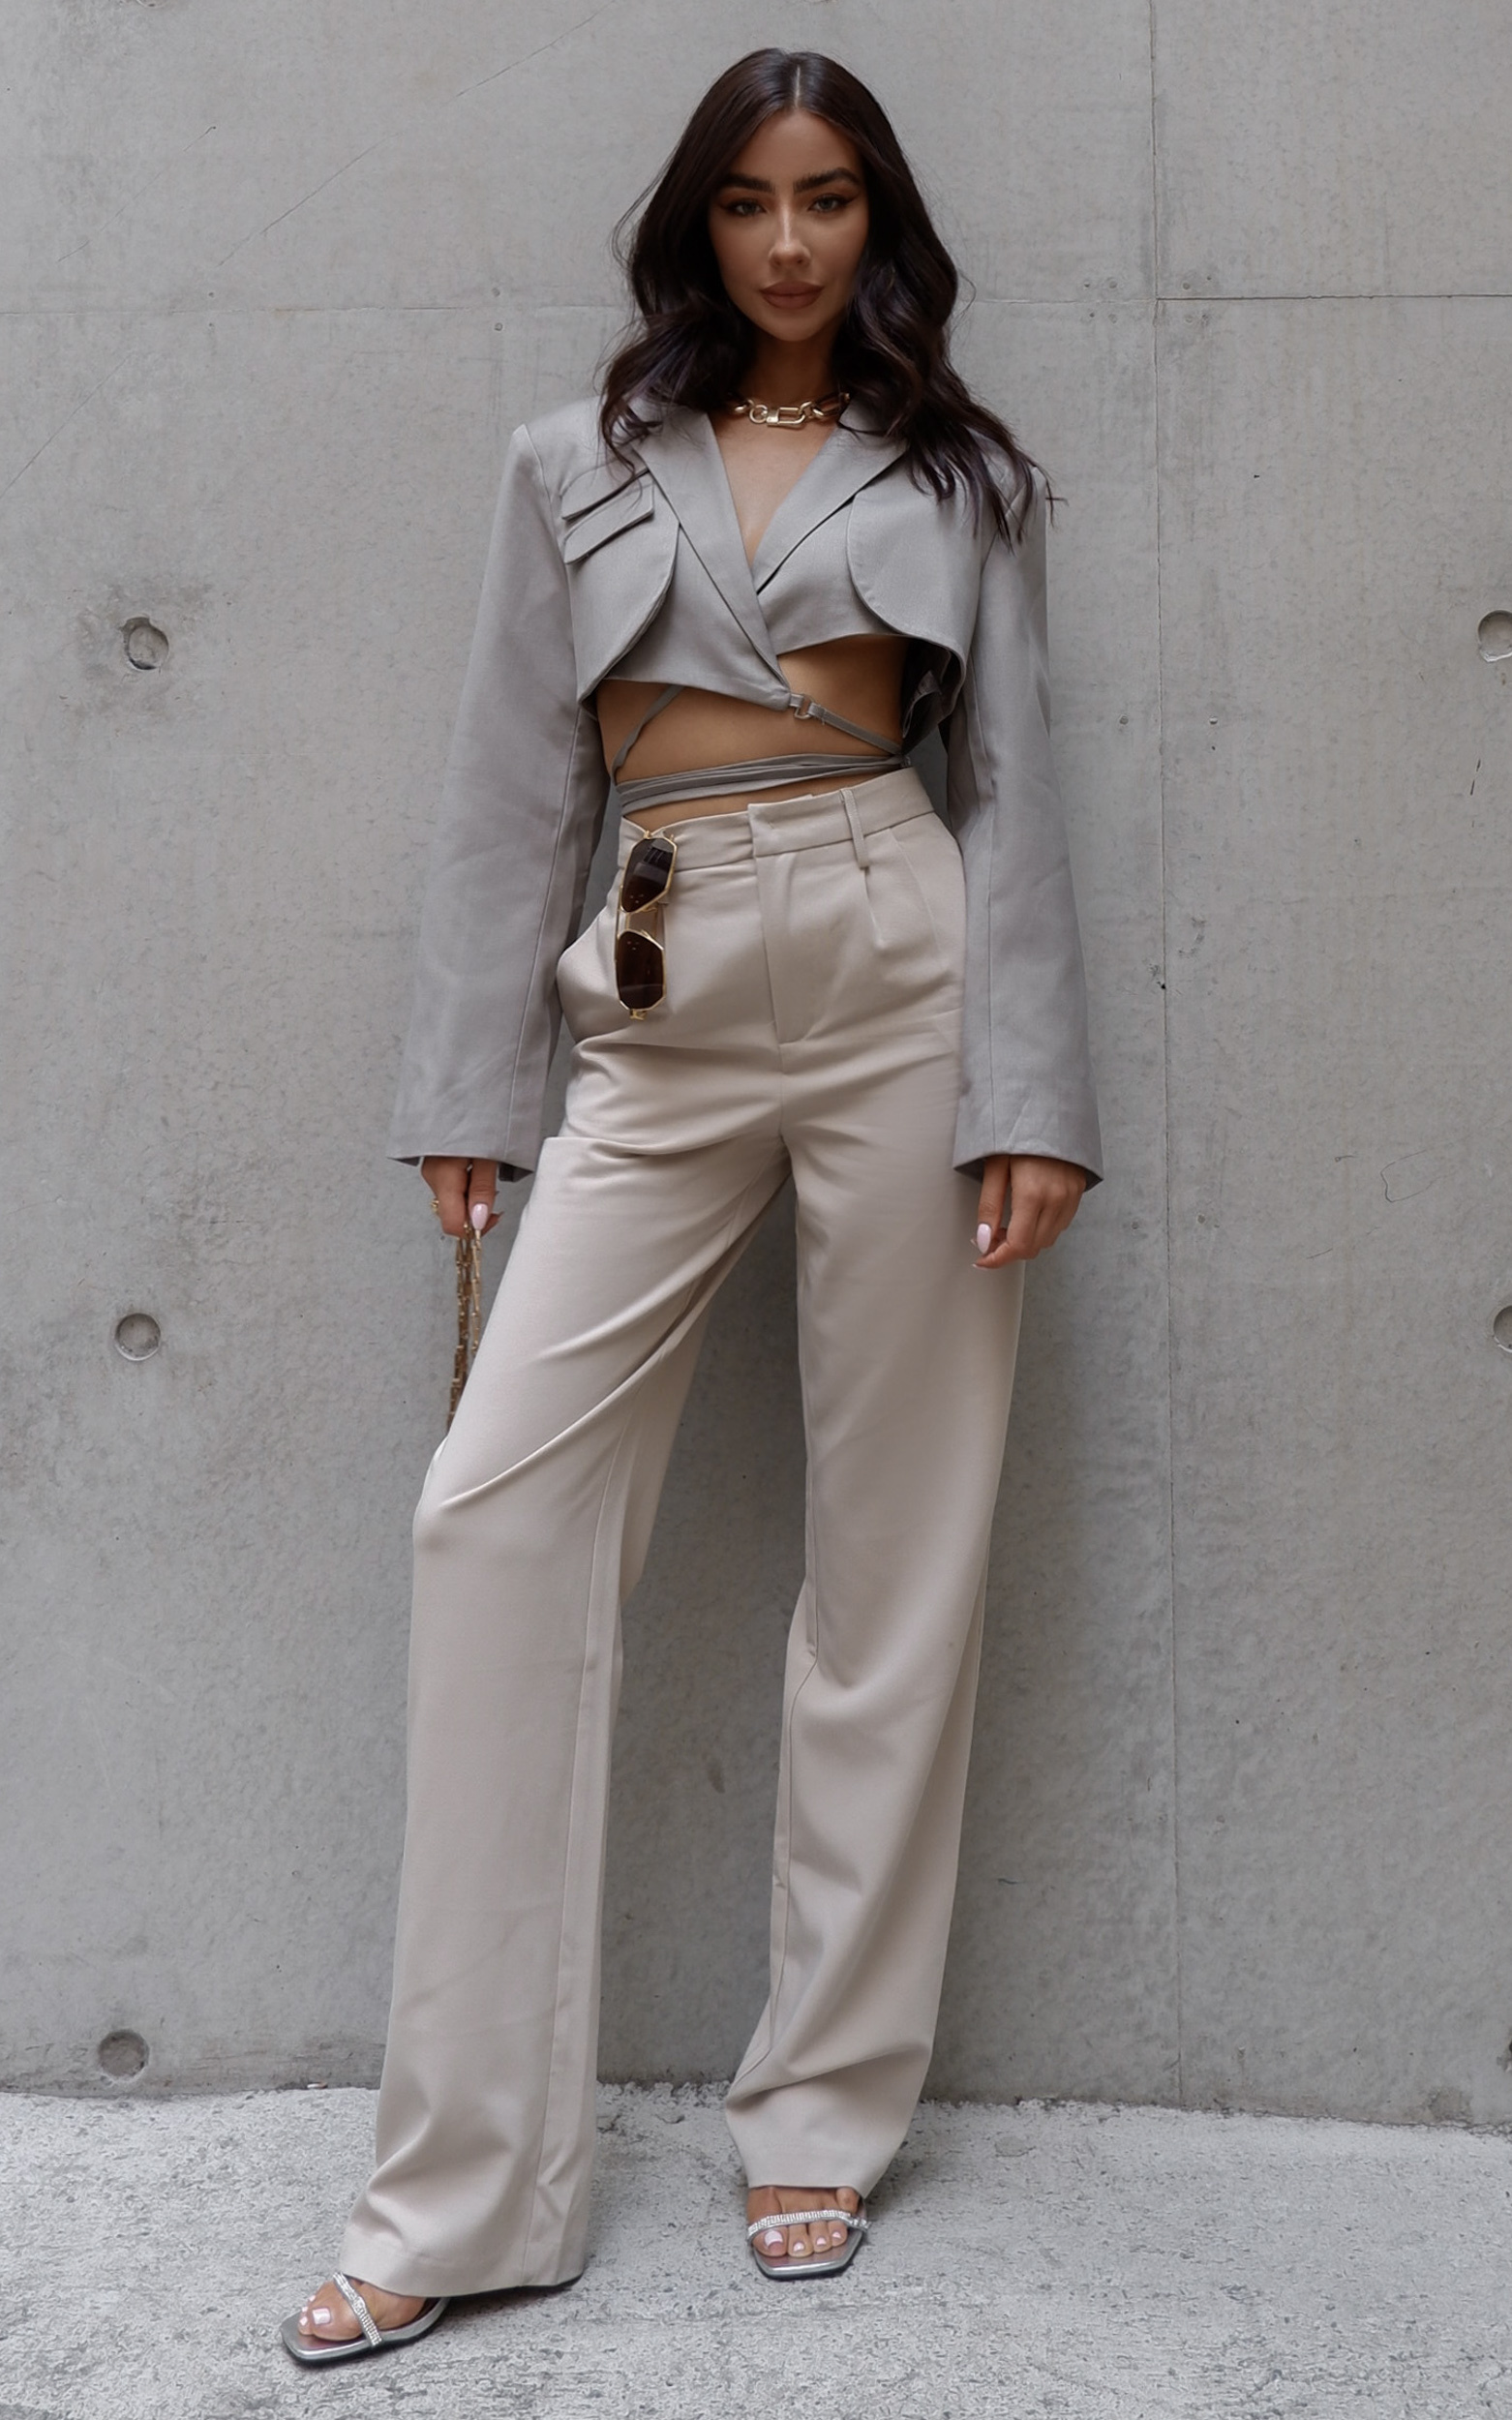 Lorcan High Waisted Tailored Pants in Stone - 04, NEU2, hi-res image number null